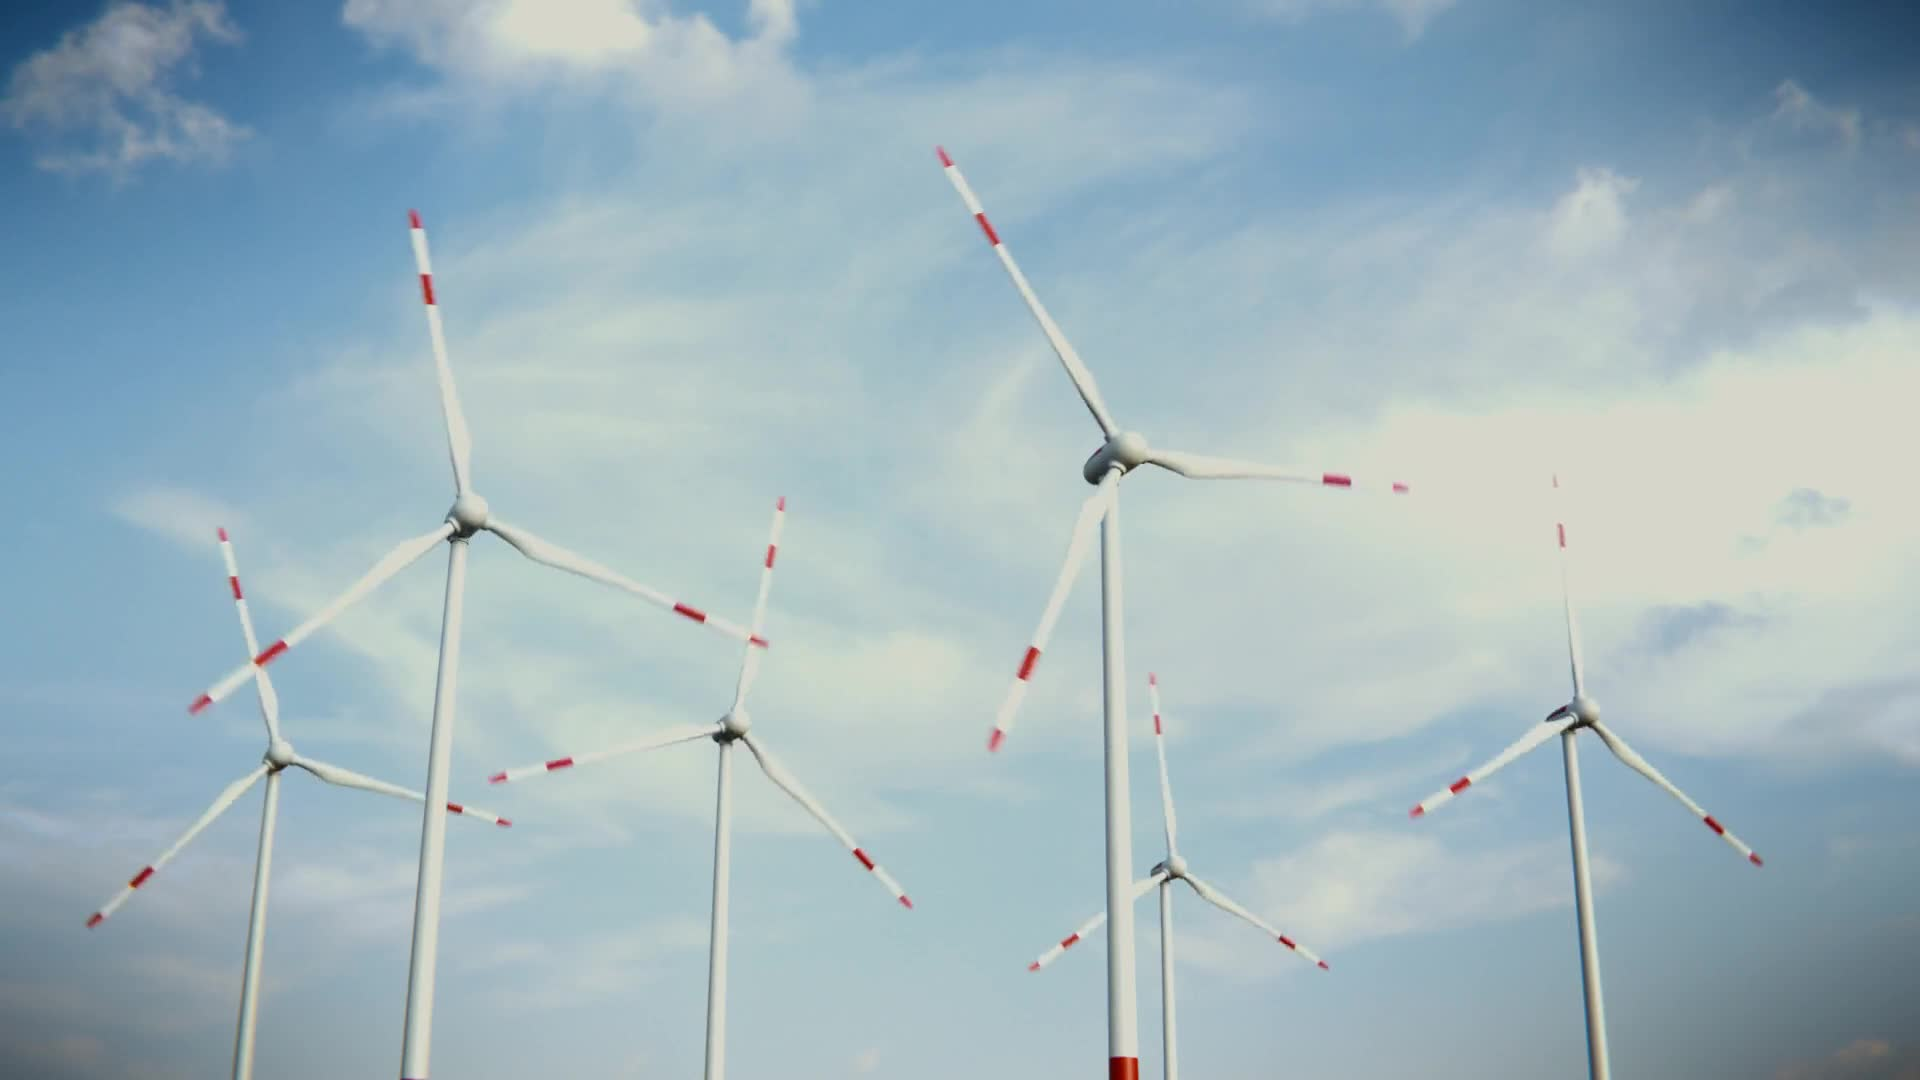 Video of windmills